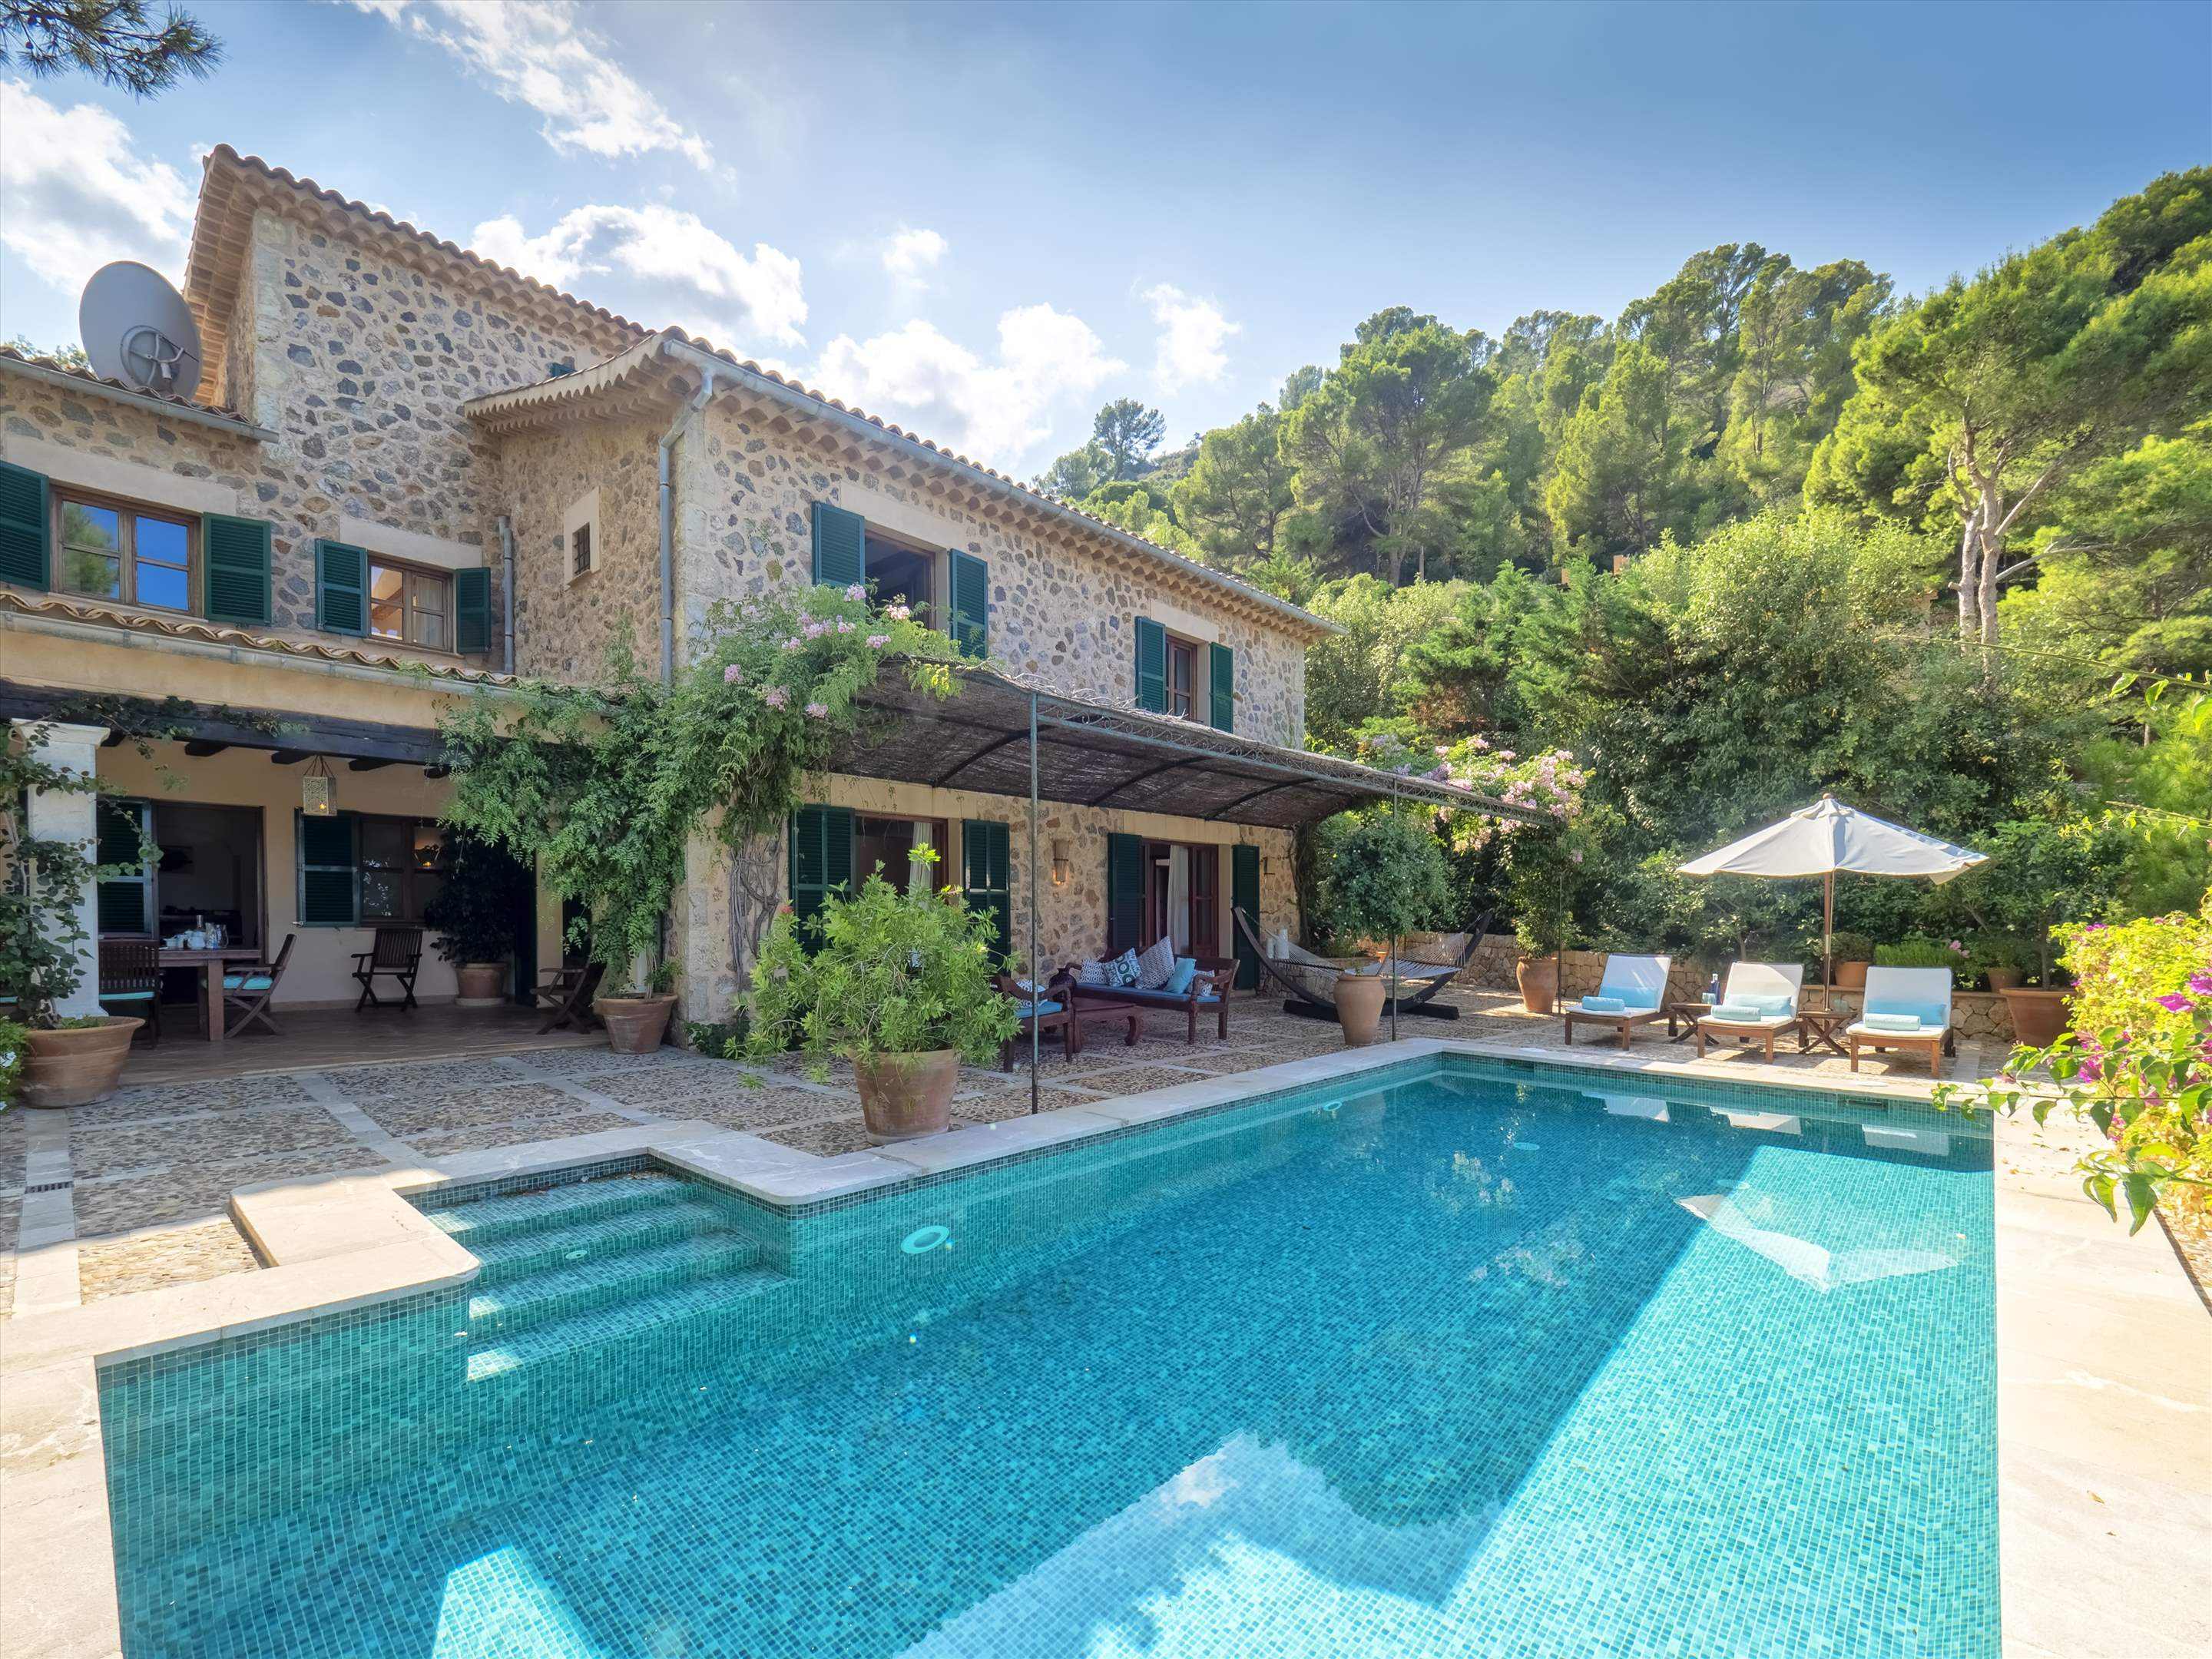 Sa Cala, 4 bedroom villa in Soller & Deia, Majorca Photo #1